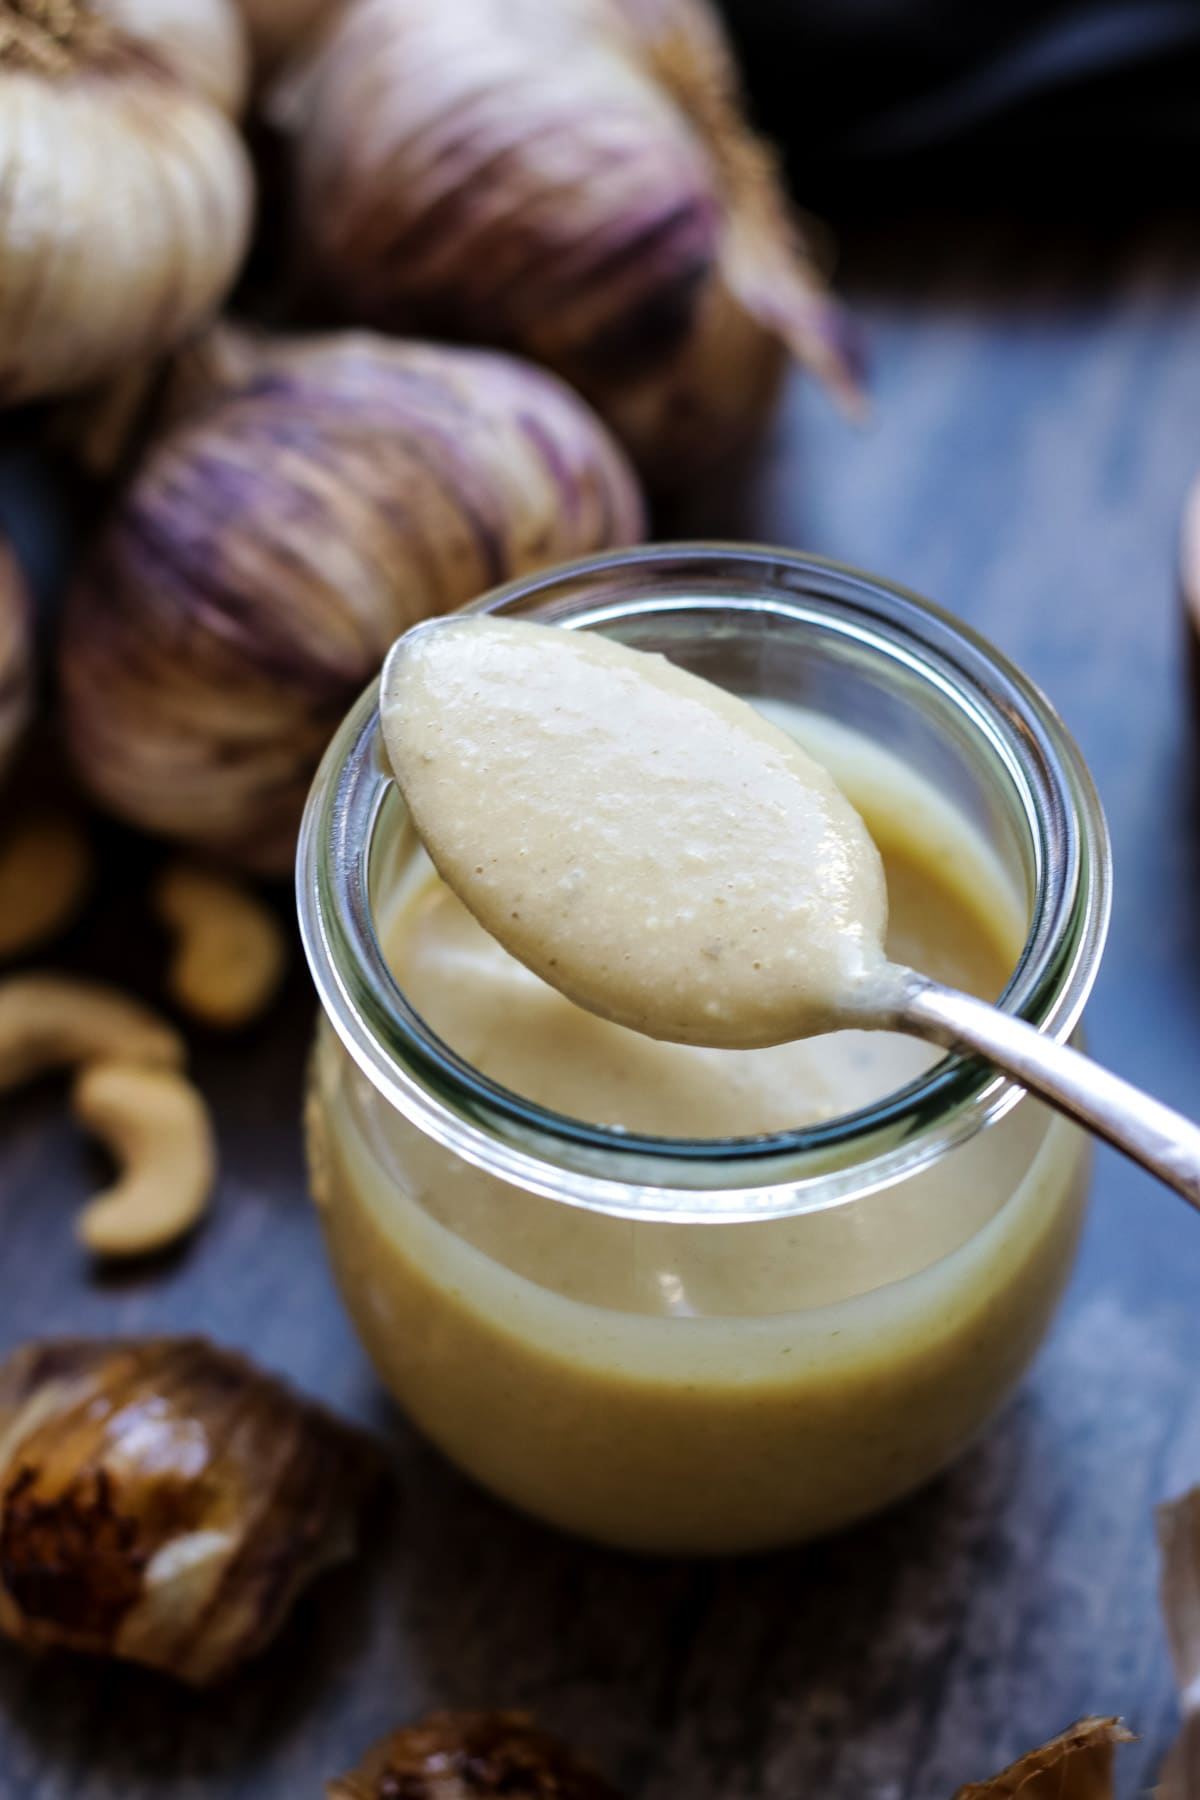 A jar of roasted garlic sauce with a spoon.